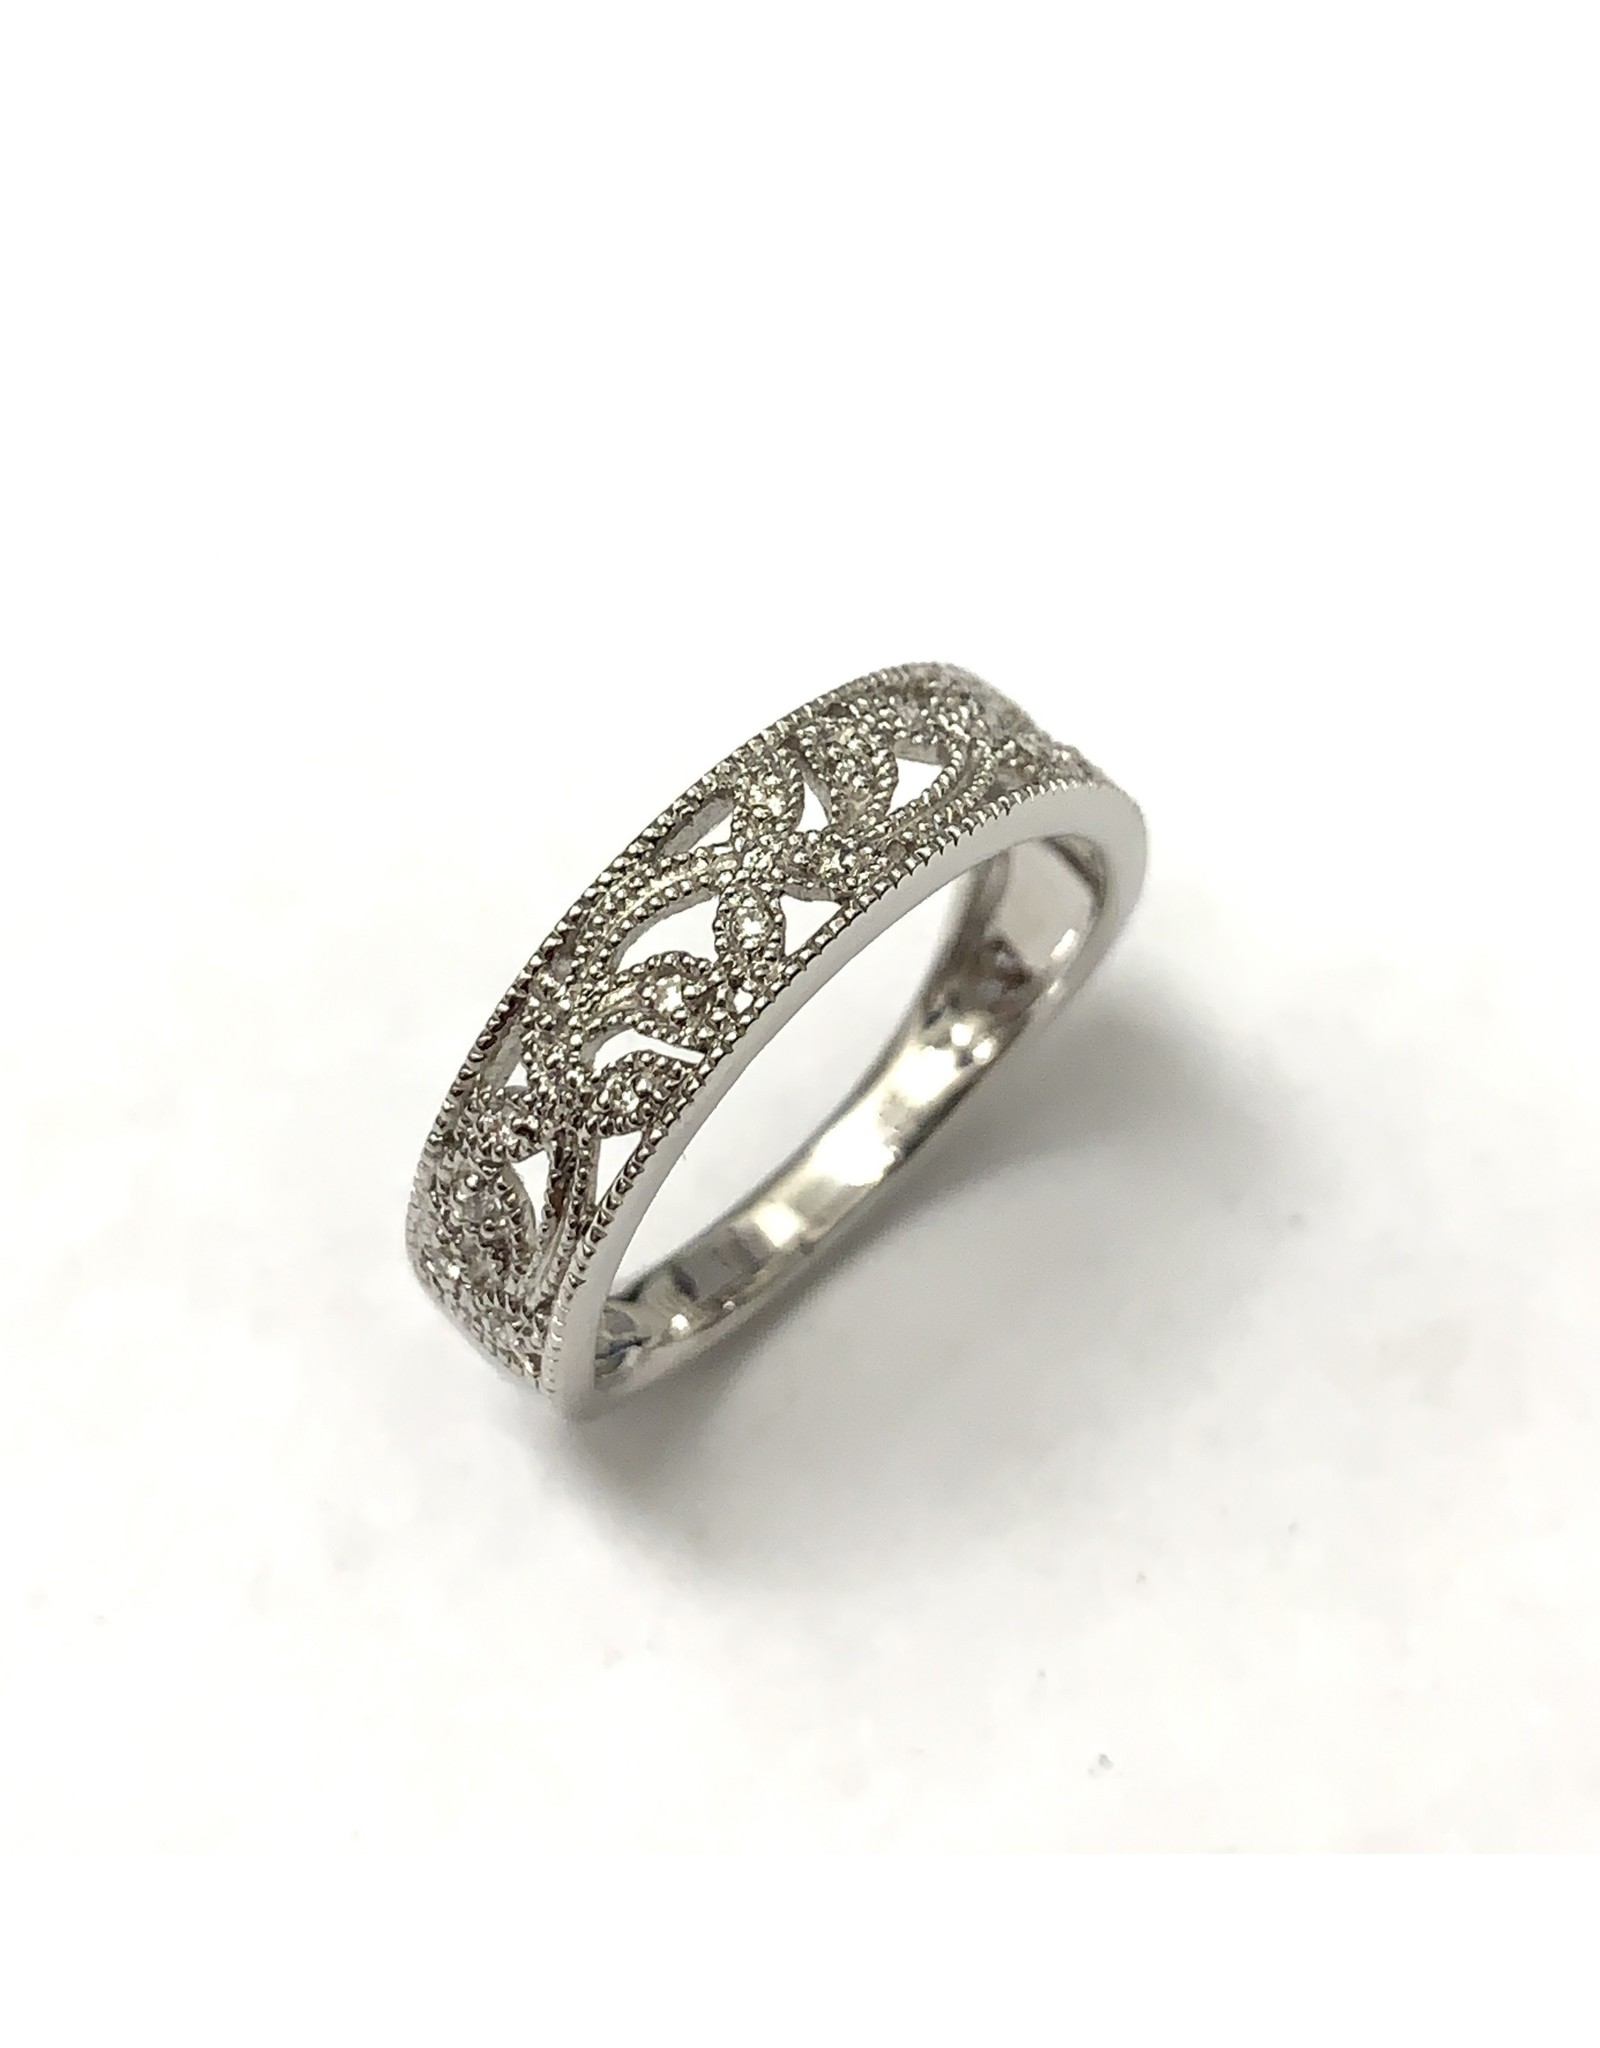 Millgrained Diamond Ring 10KW